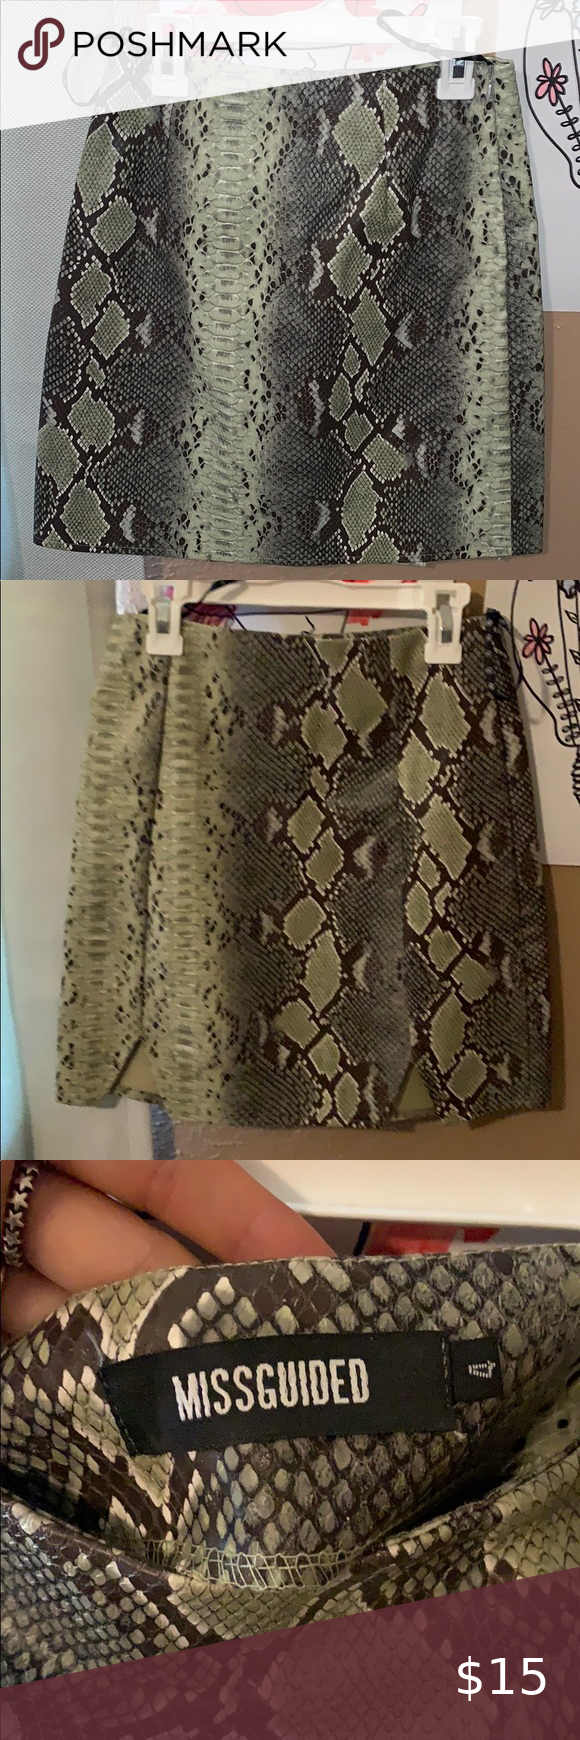 snake print skirt bodycon style skirt tag says 4 but fits like a US 0/2 Missguid…